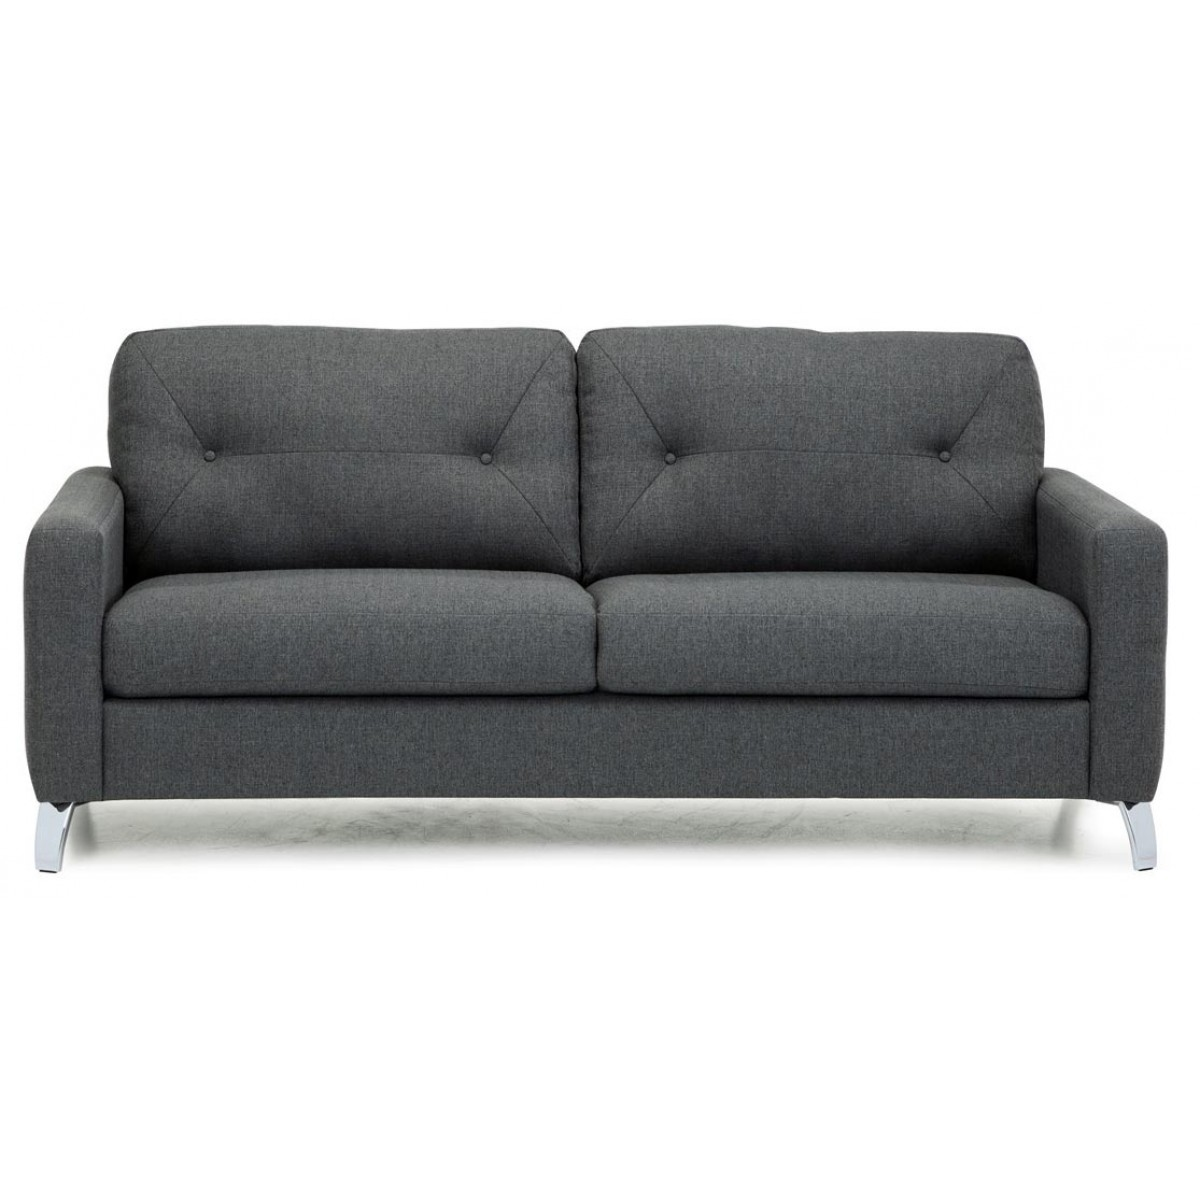 Palliser Dot Sectional From 1 By Palliser Danco